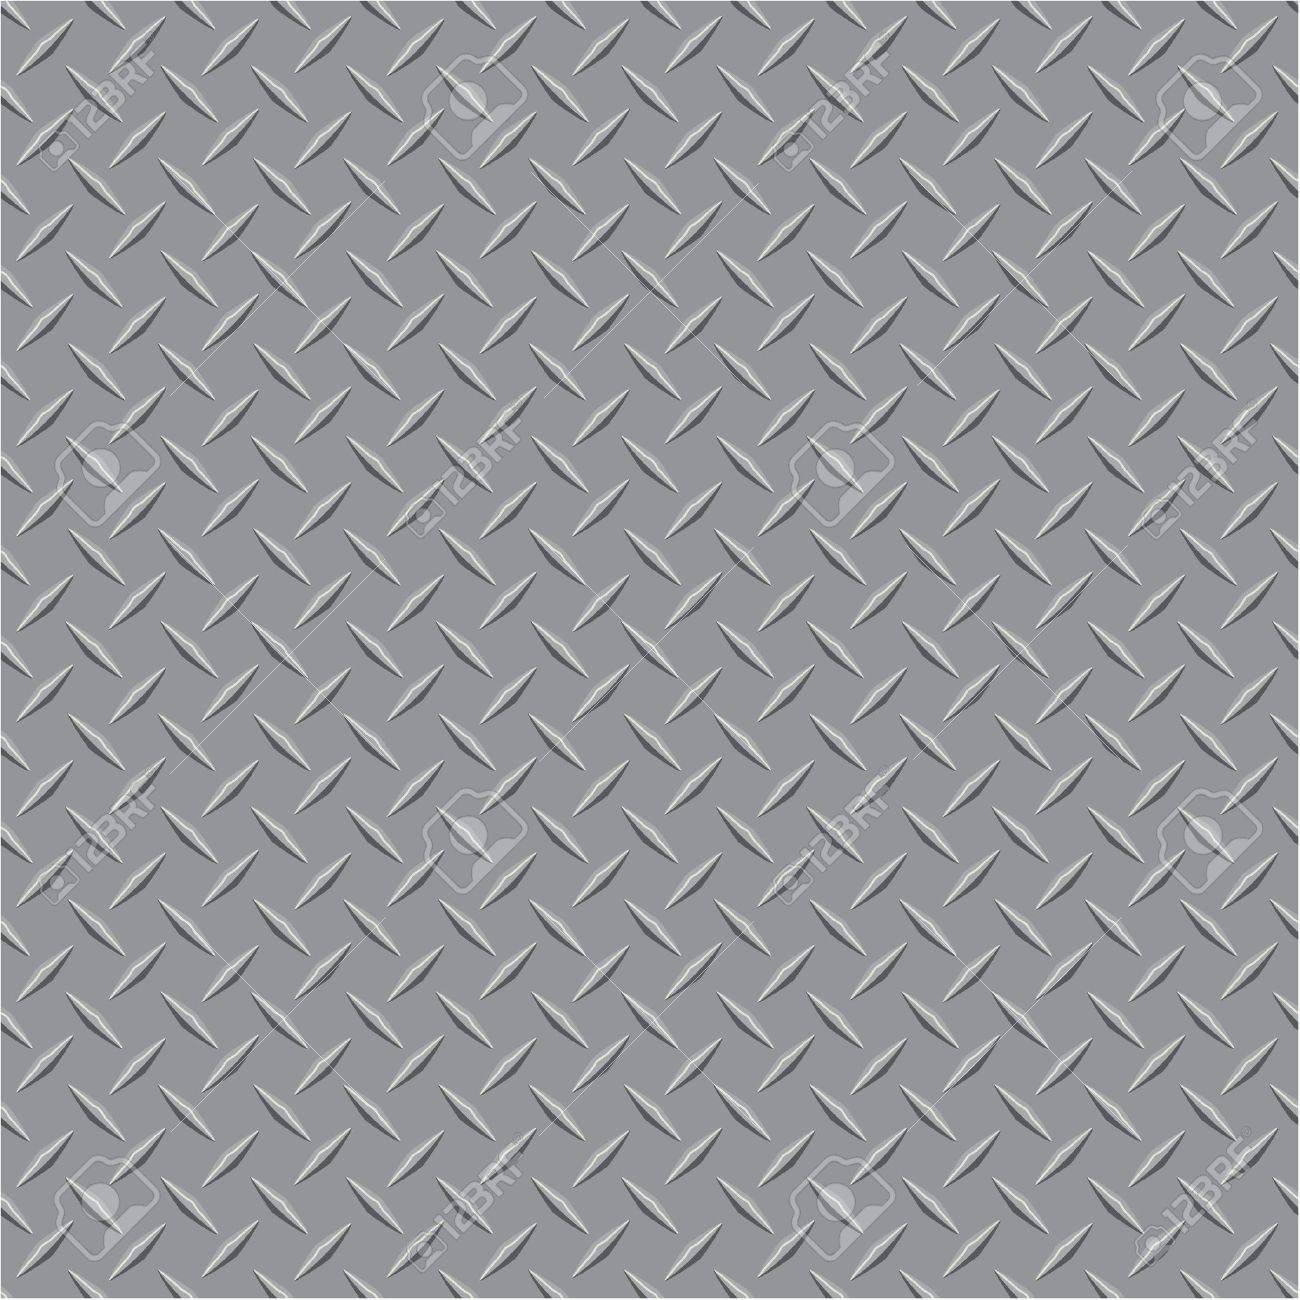 vector illustration of the metal plate Stock Vector - 11998304